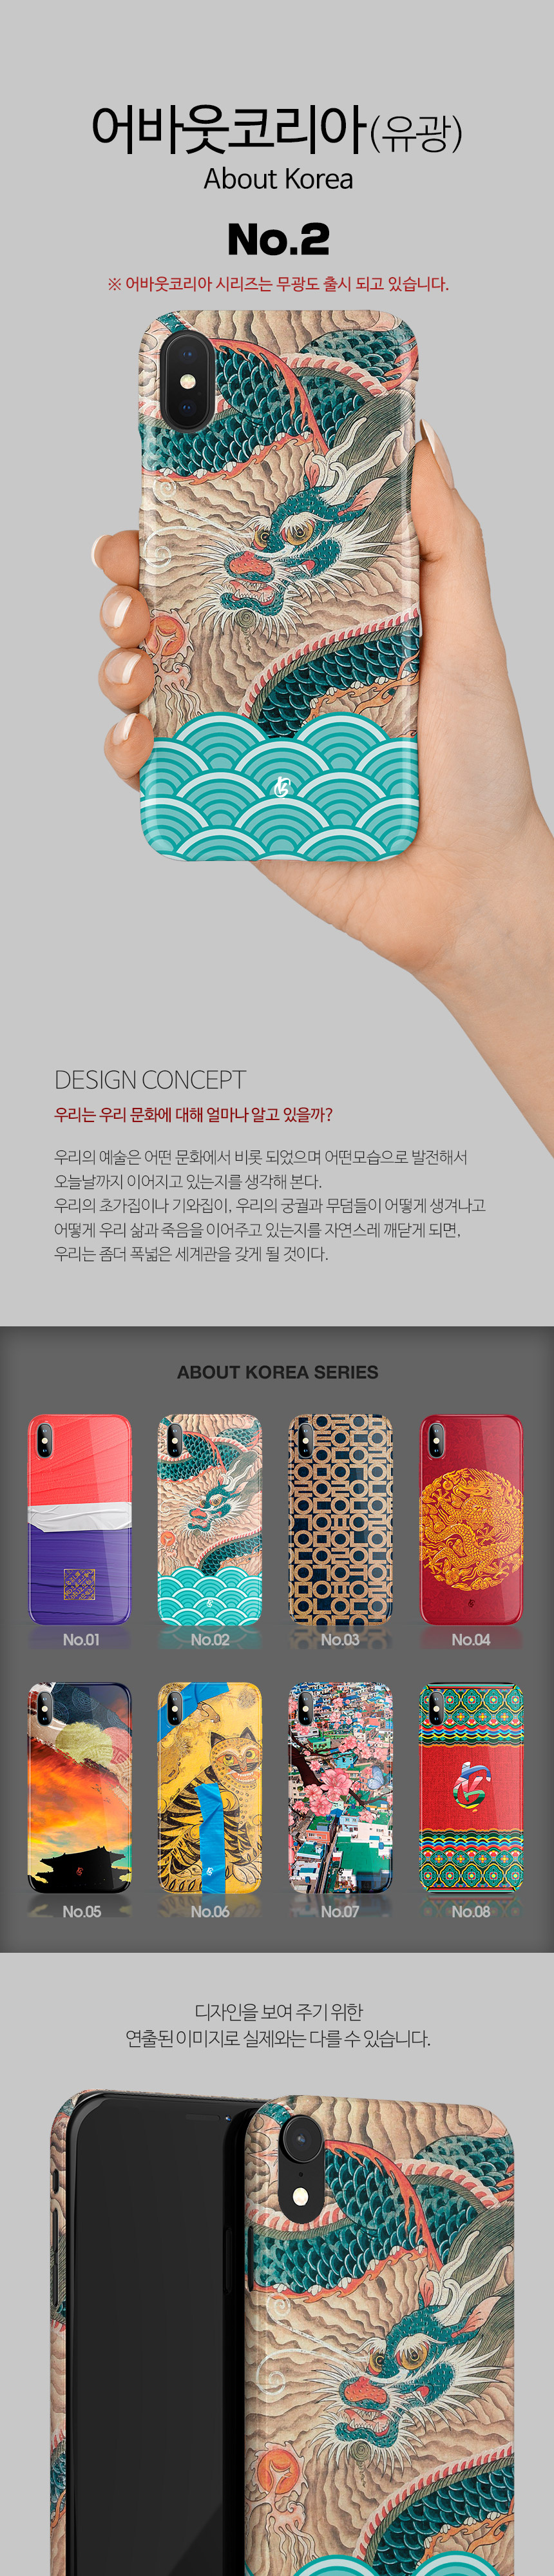 기키(GEEKY) [유광/무광] phone case About Korea No.2